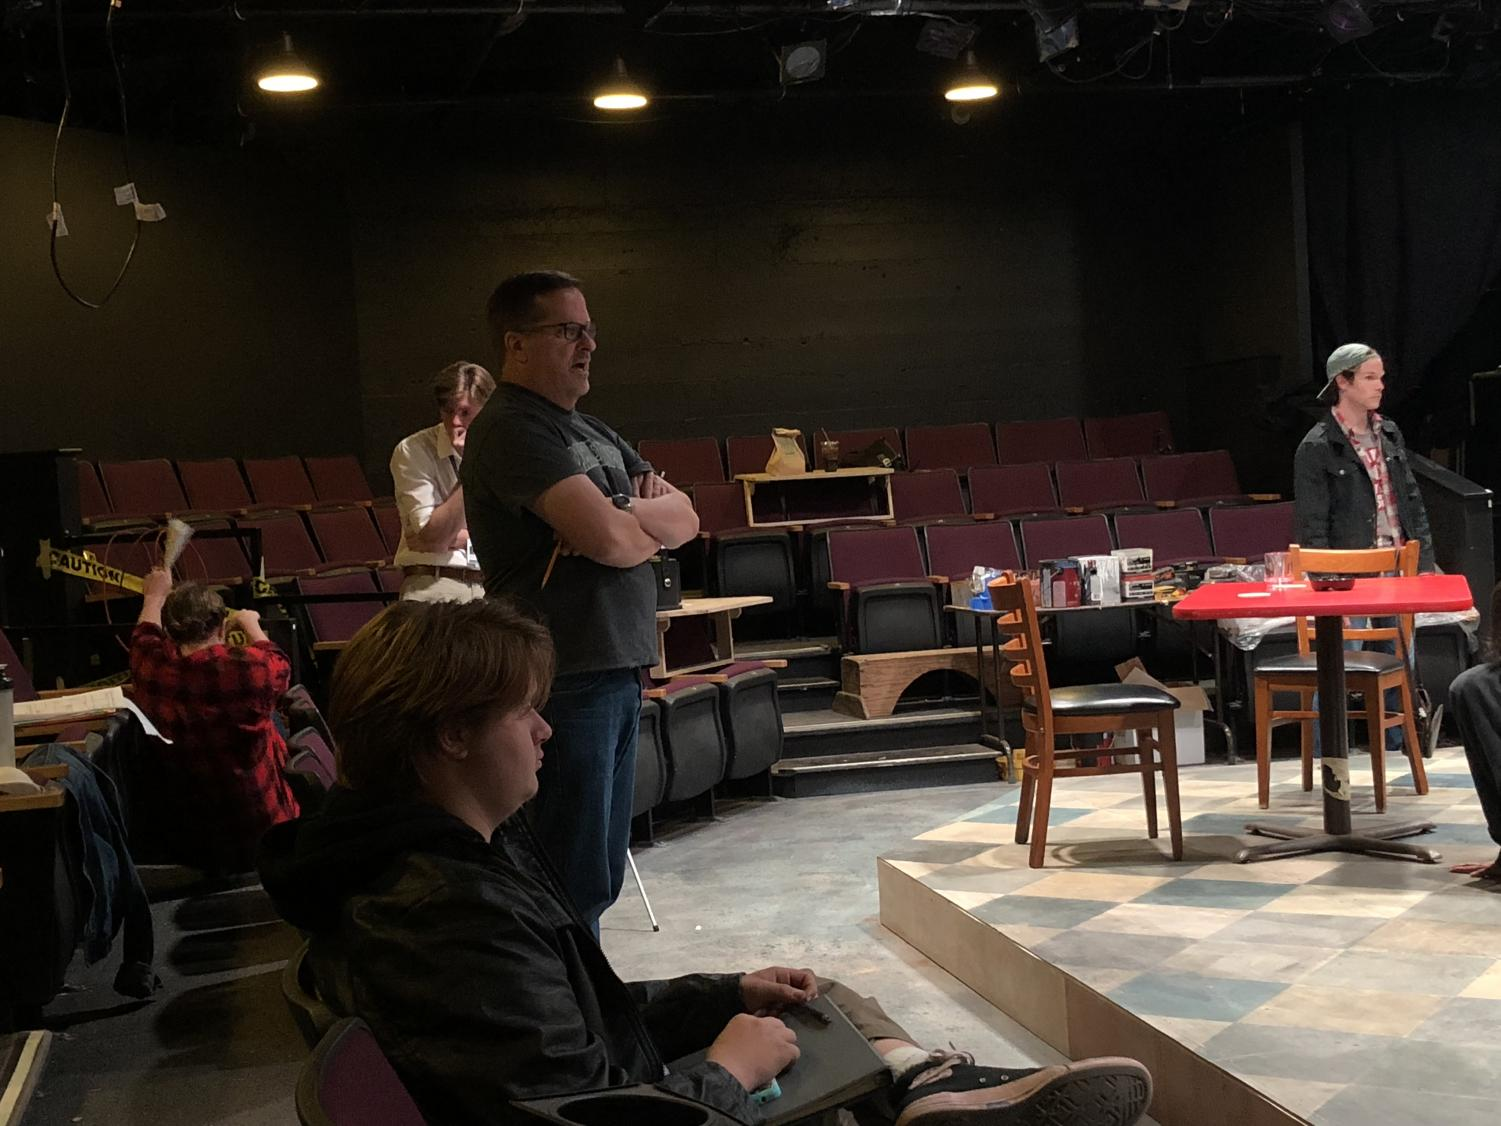 Sac State professor, Michael Stevenson, directs the play 'SWEAT' at Capital Stage in Sacramento, Calif. The play debuted Oct. 17 and runs until Nov. 18.